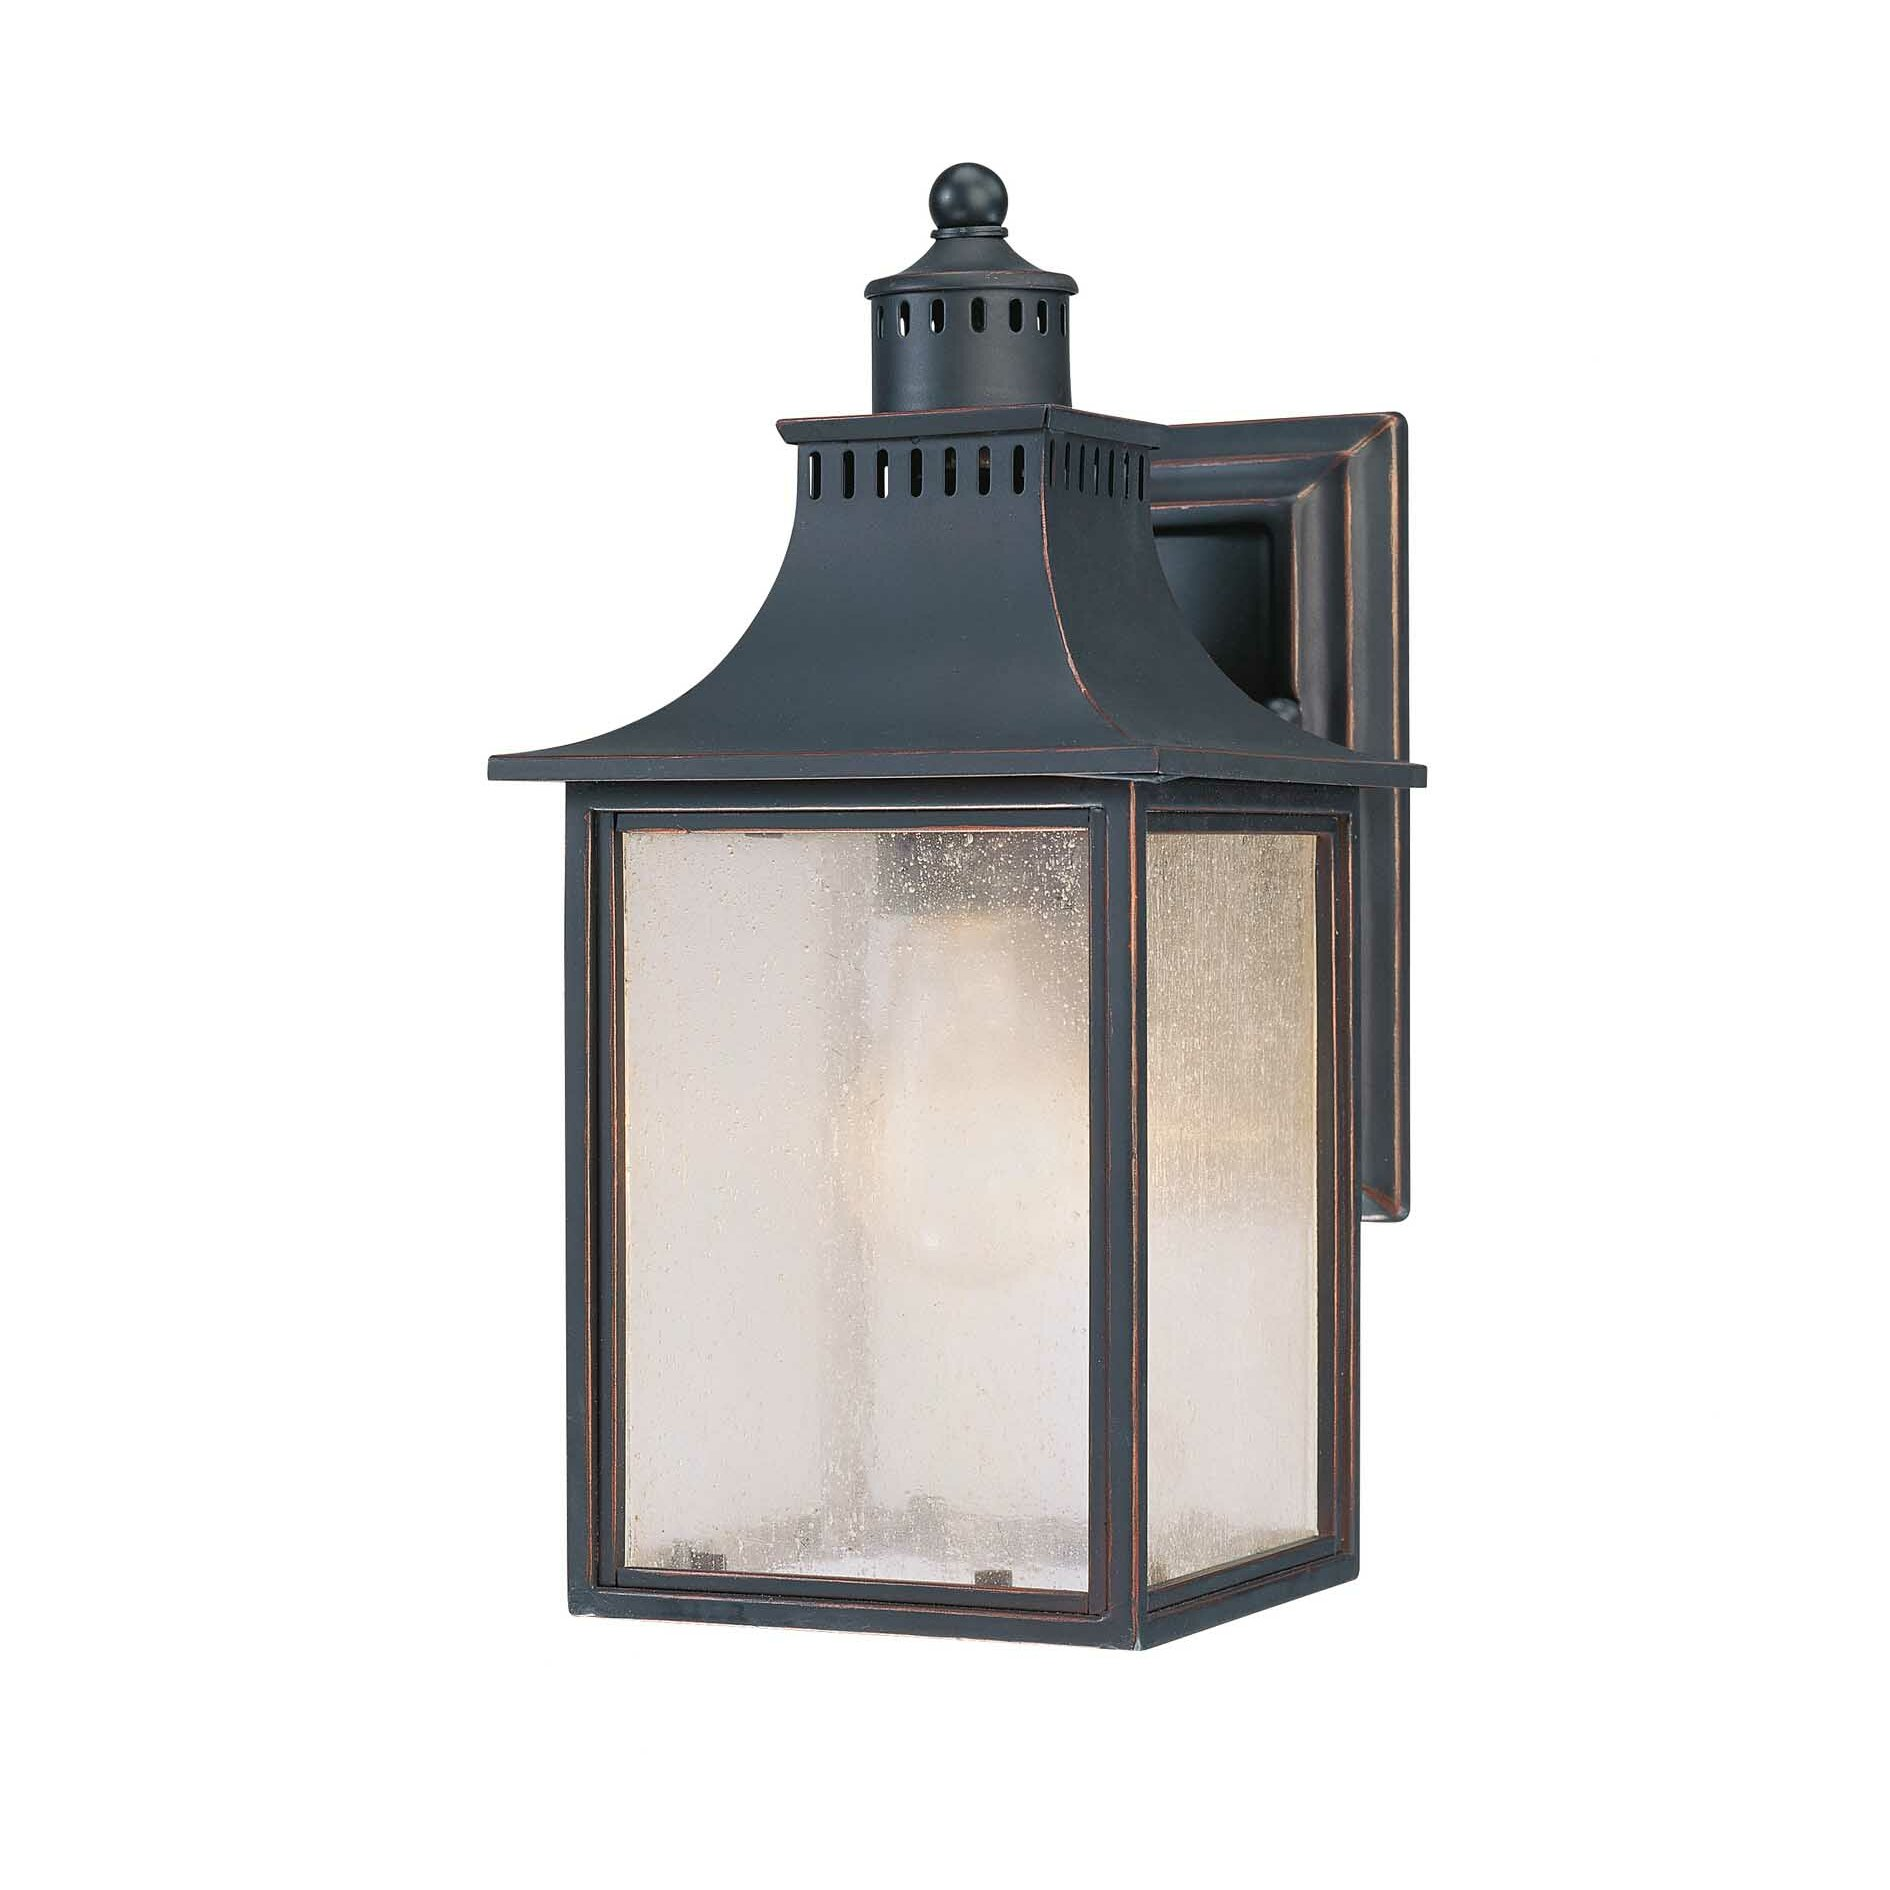 Wayfair Outdoor Wall Lights : Savoy House Monte Grande 1 Light Outdoor Wall Lantern & Reviews Wayfair